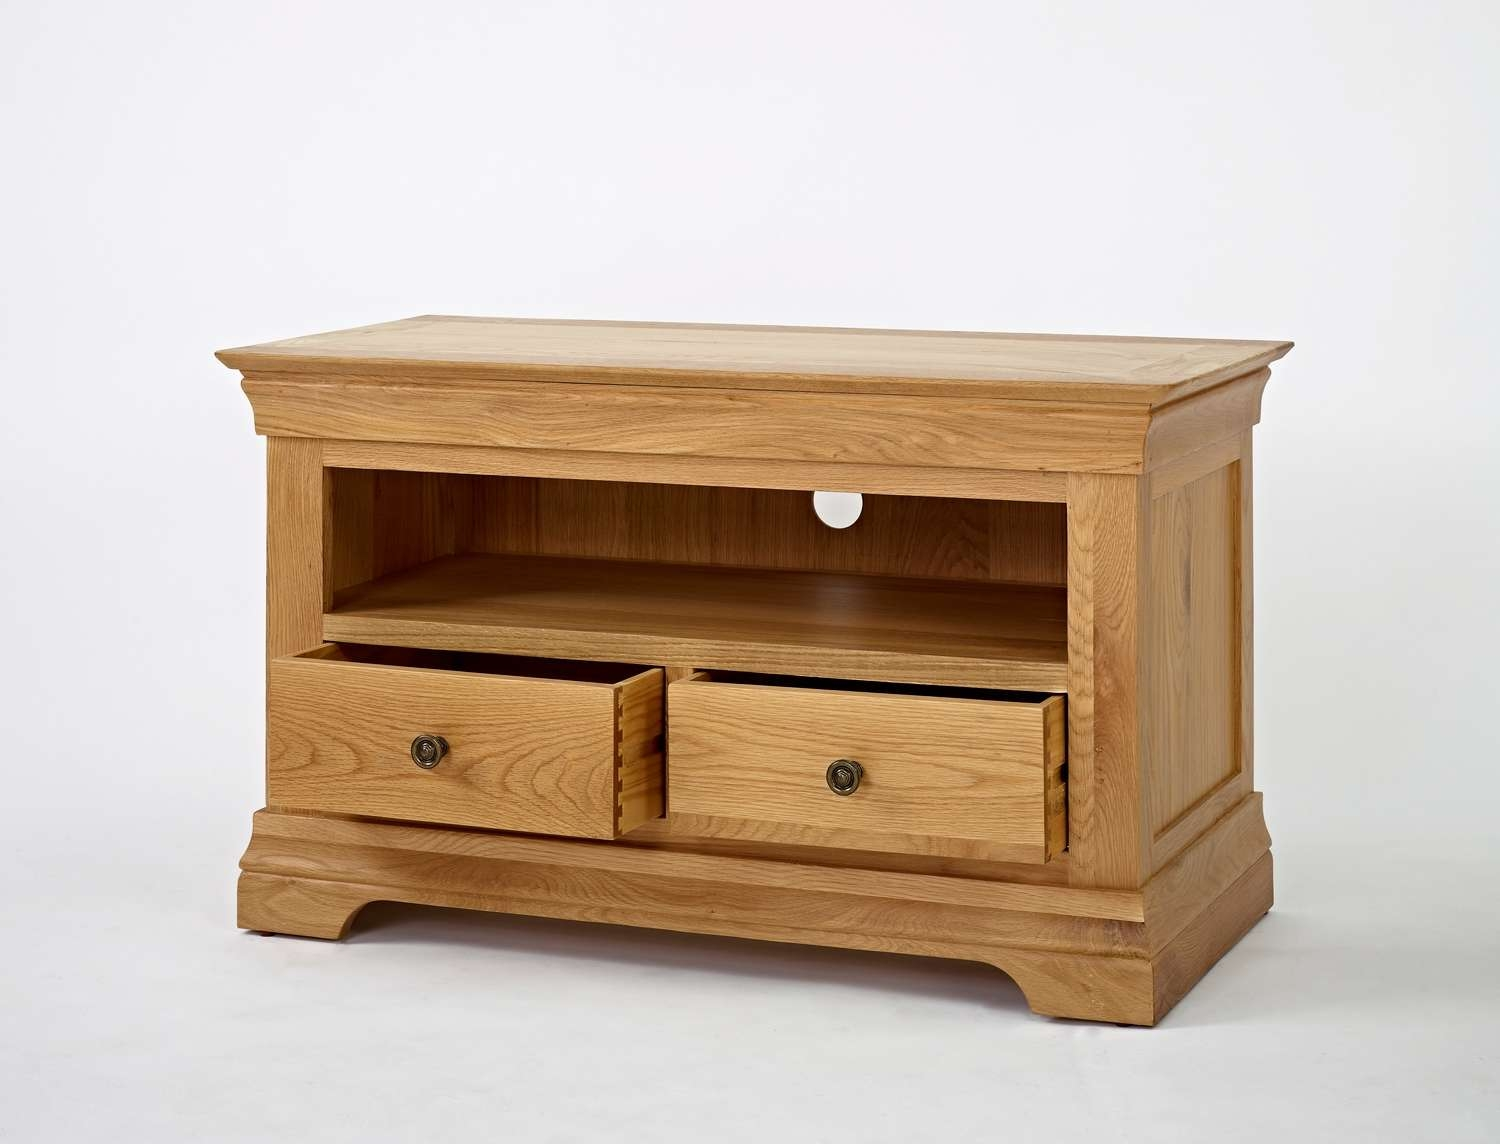 French Modern Oak Small Tv Unit | Hampshire Furniture Pertaining To Small Oak Tv Cabinets (View 12 of 20)